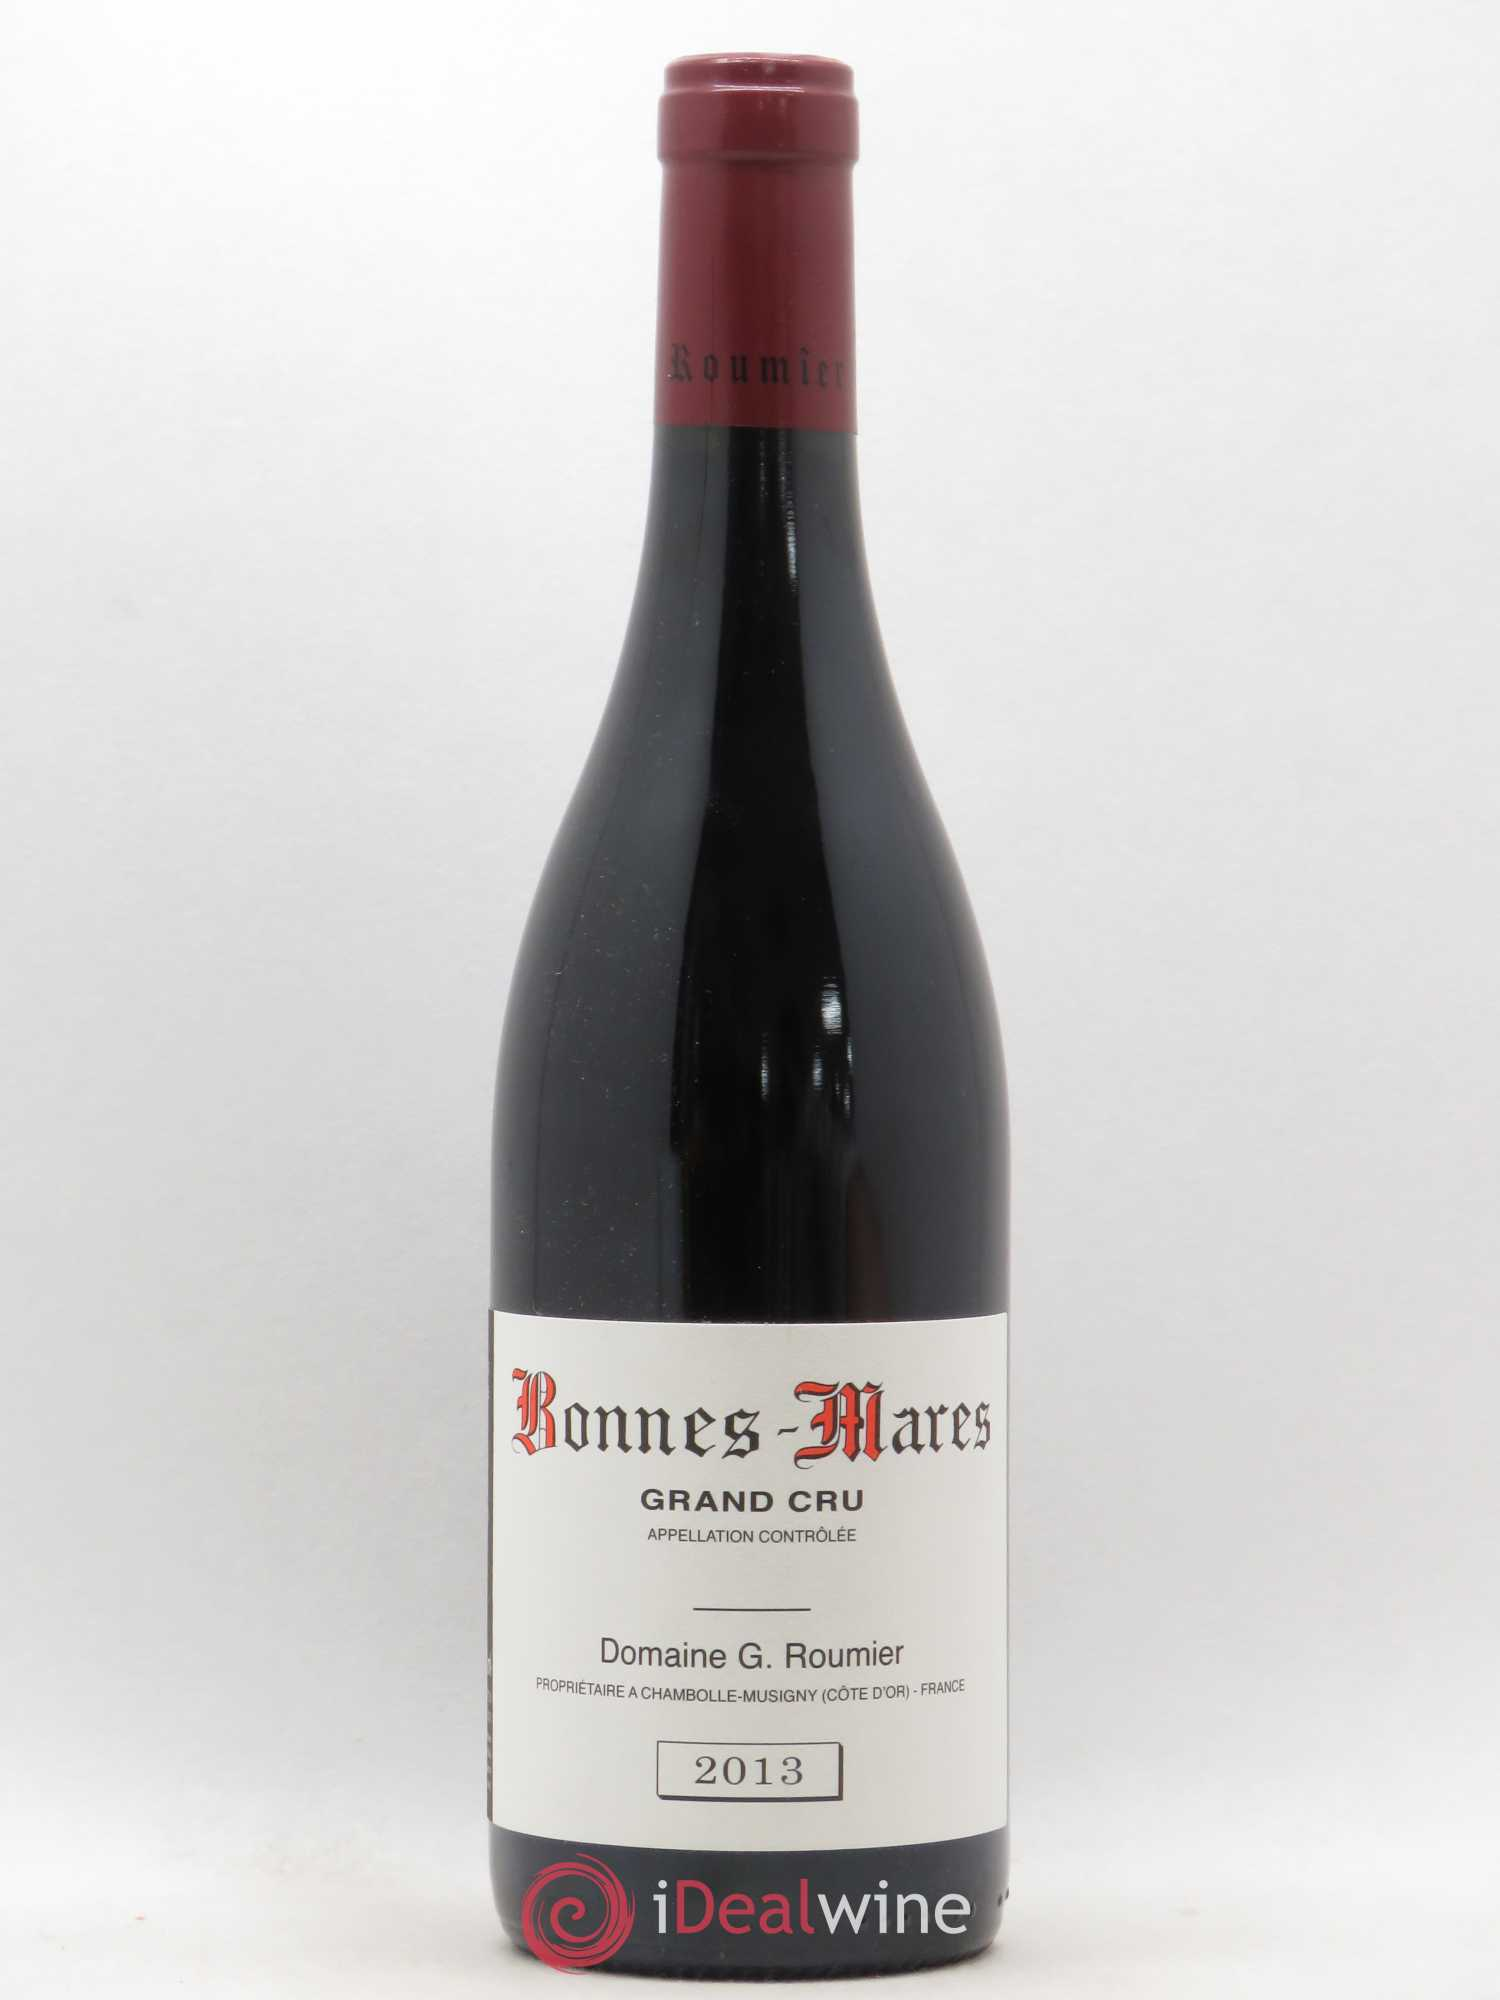 Bonnes-Mares Grand Cru Georges Roumier (Domaine)  2013 - Lot of 1 Bottle